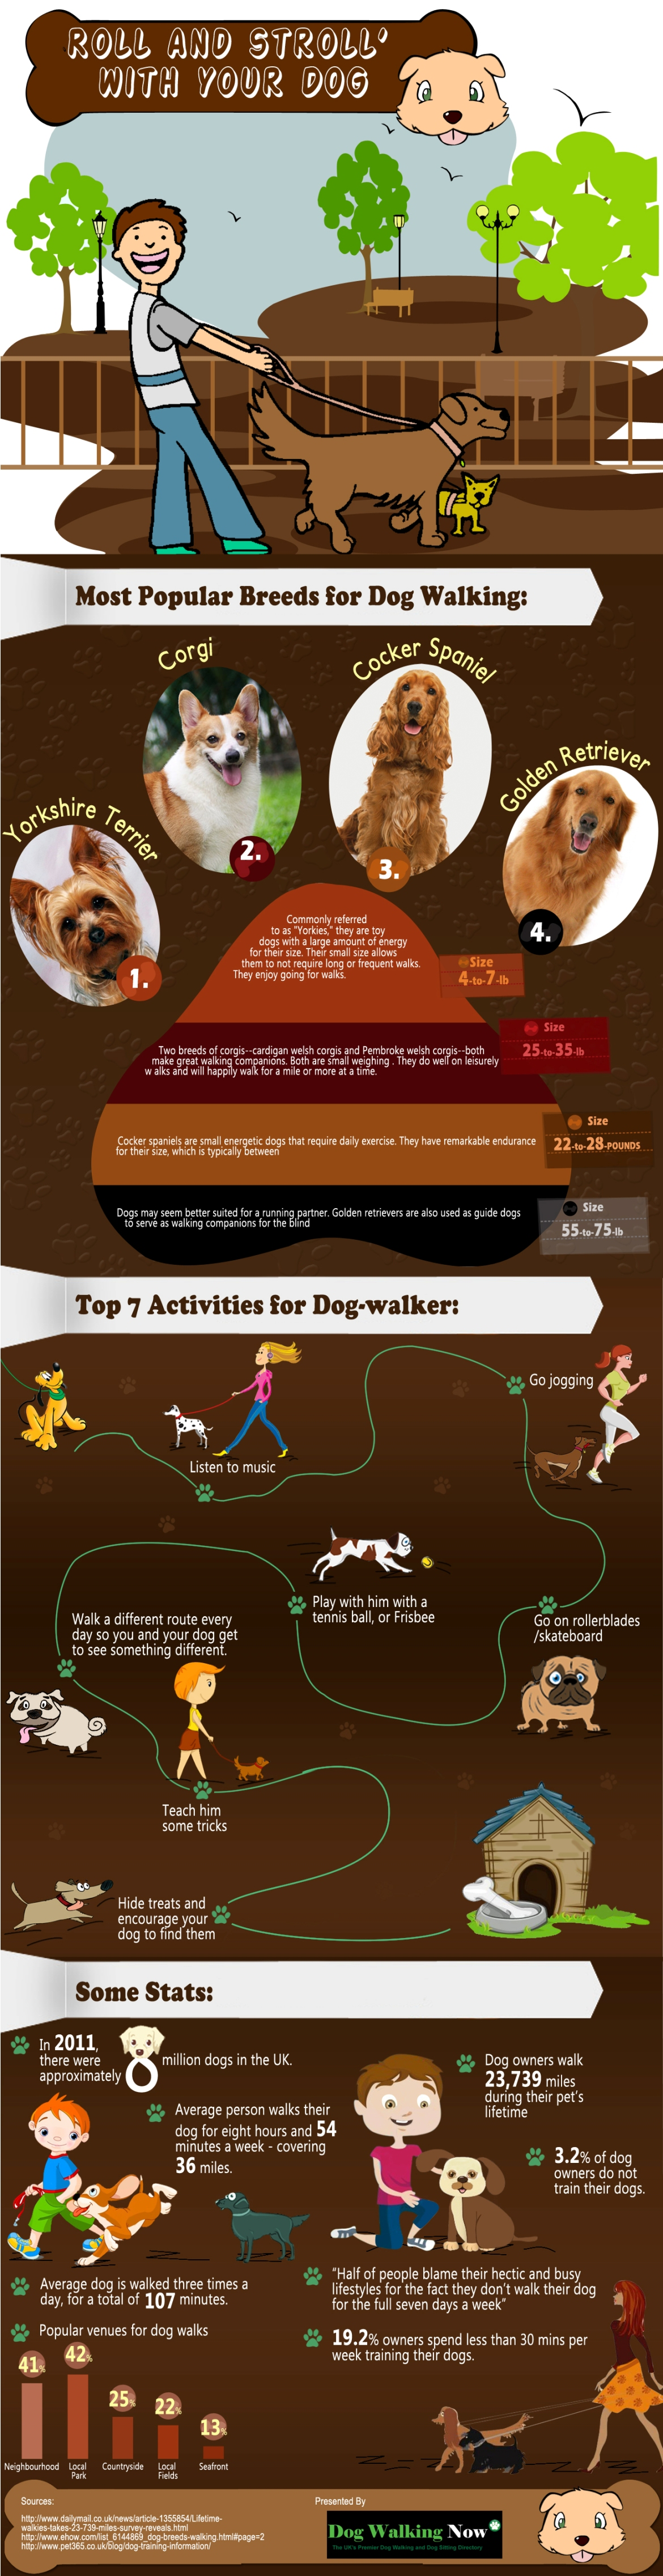 Roll and stroll with your dog